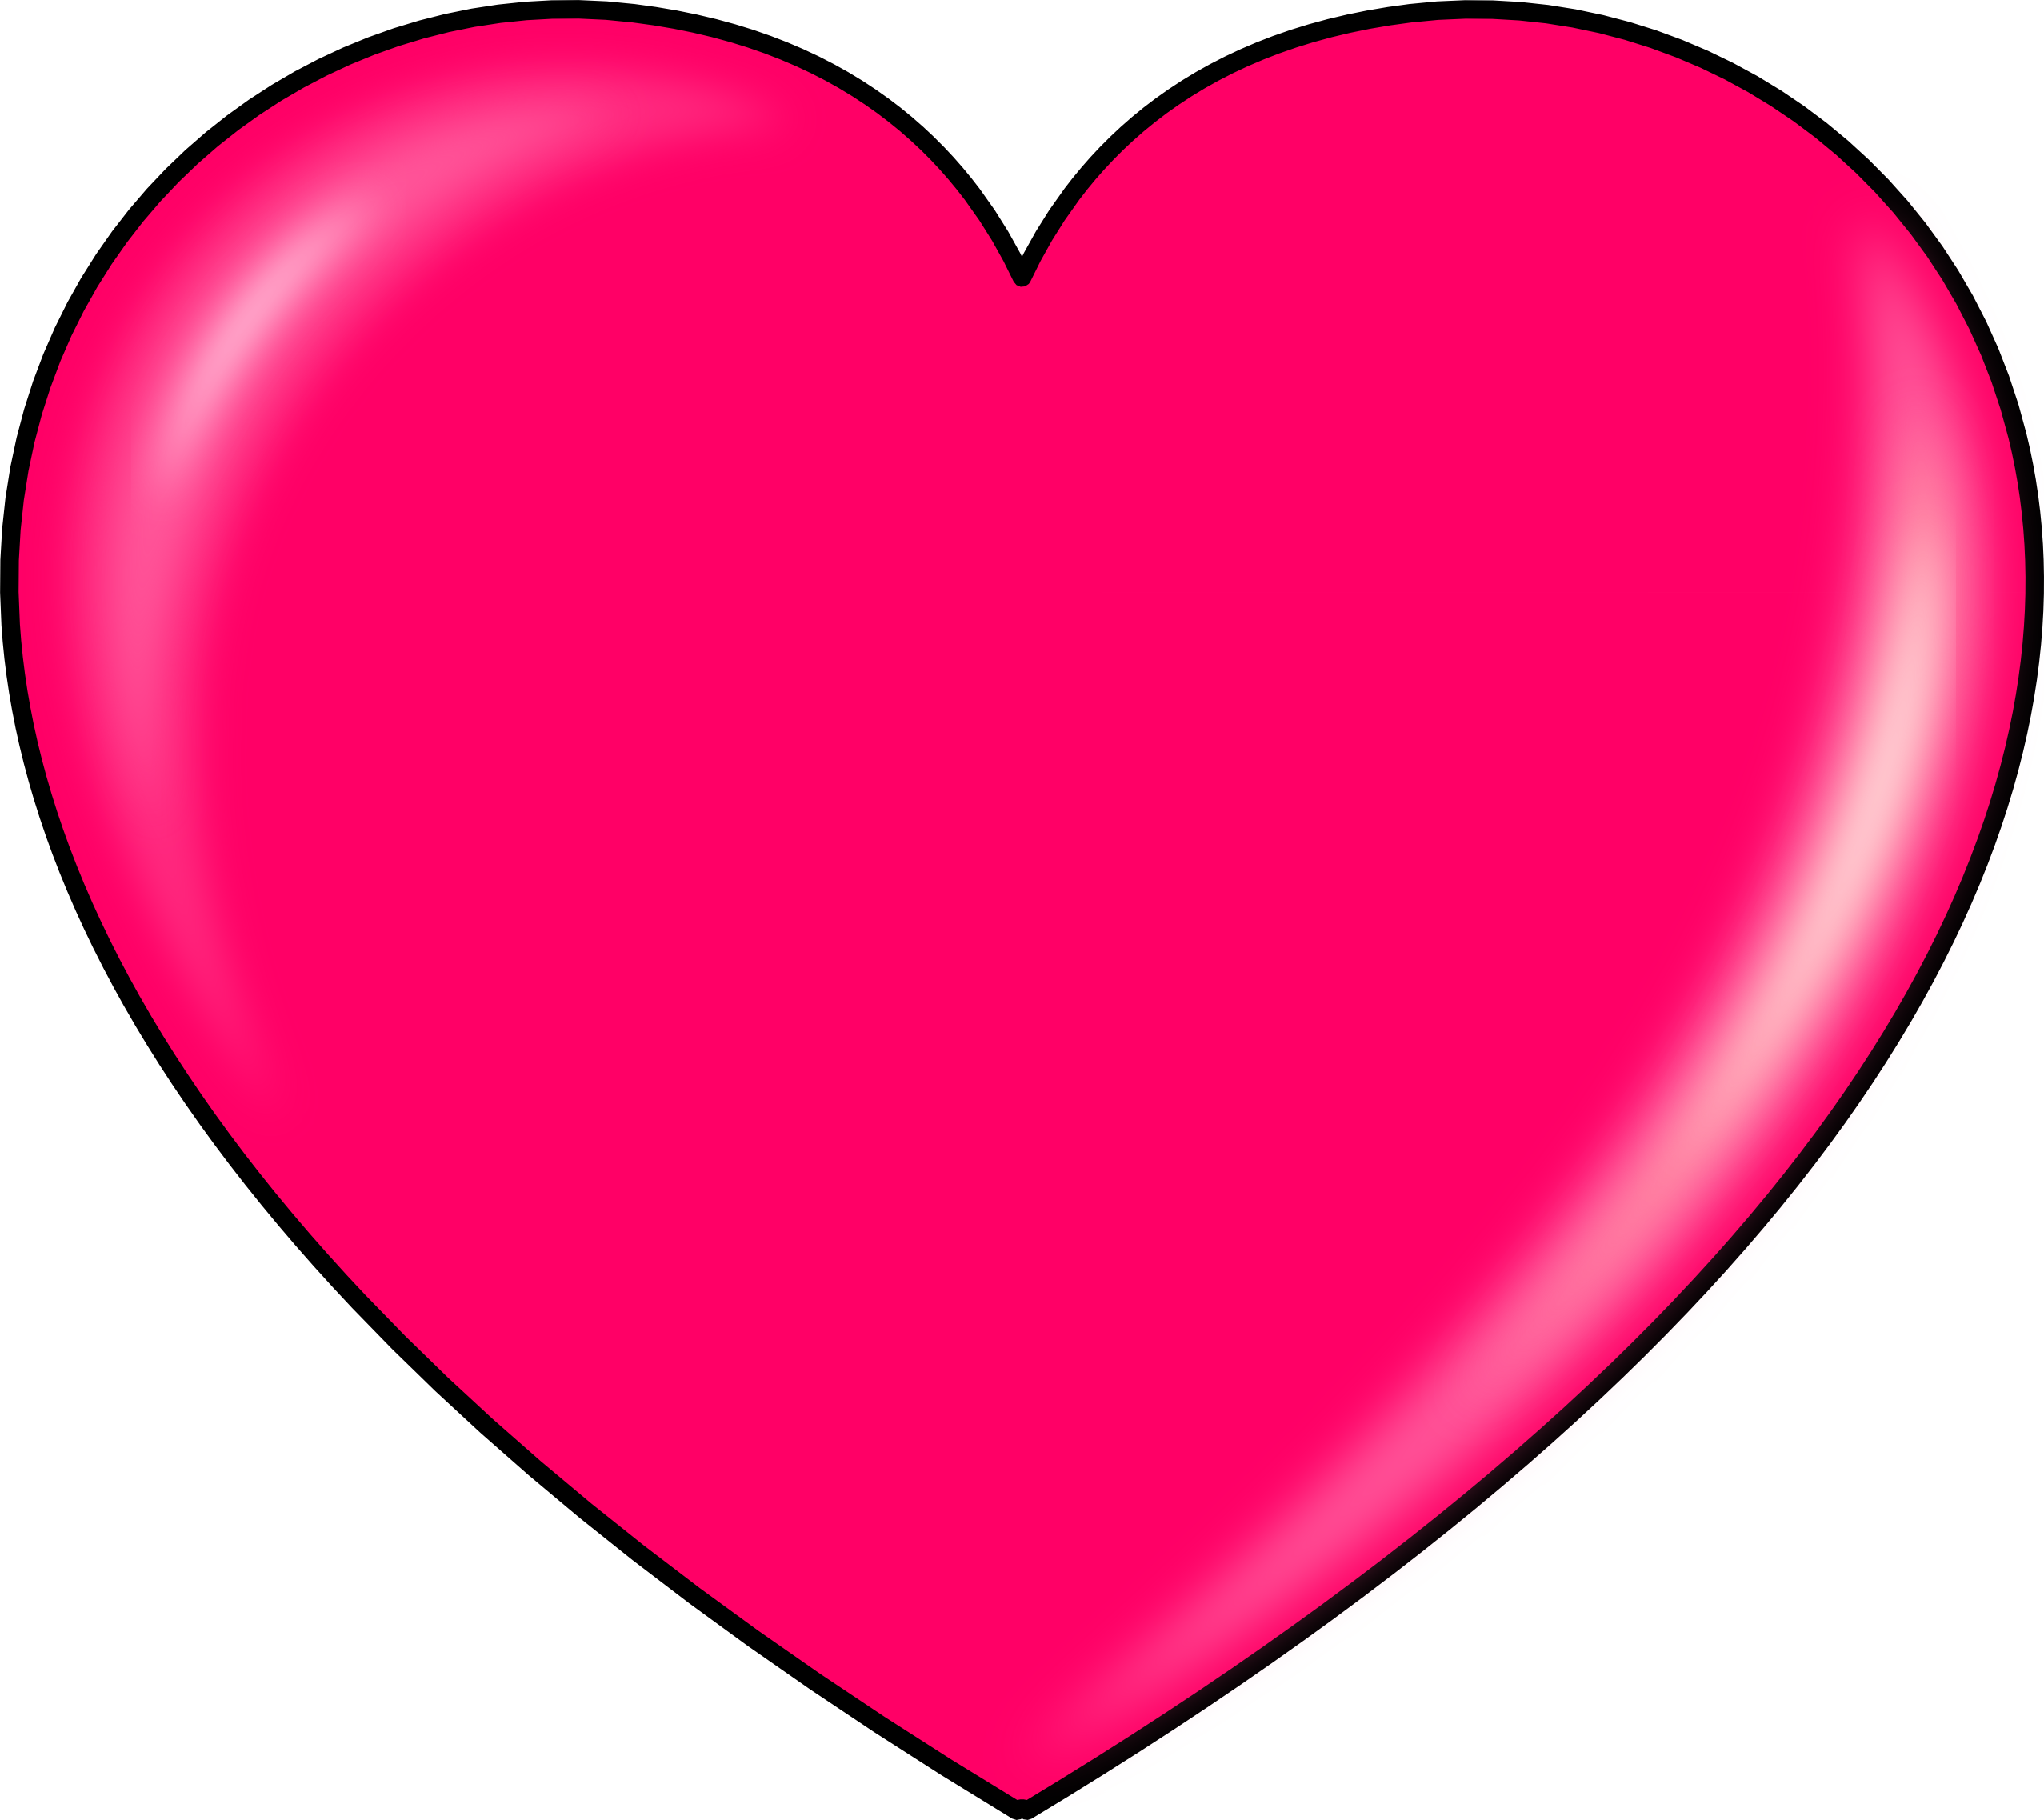 Heart PNG free images, download